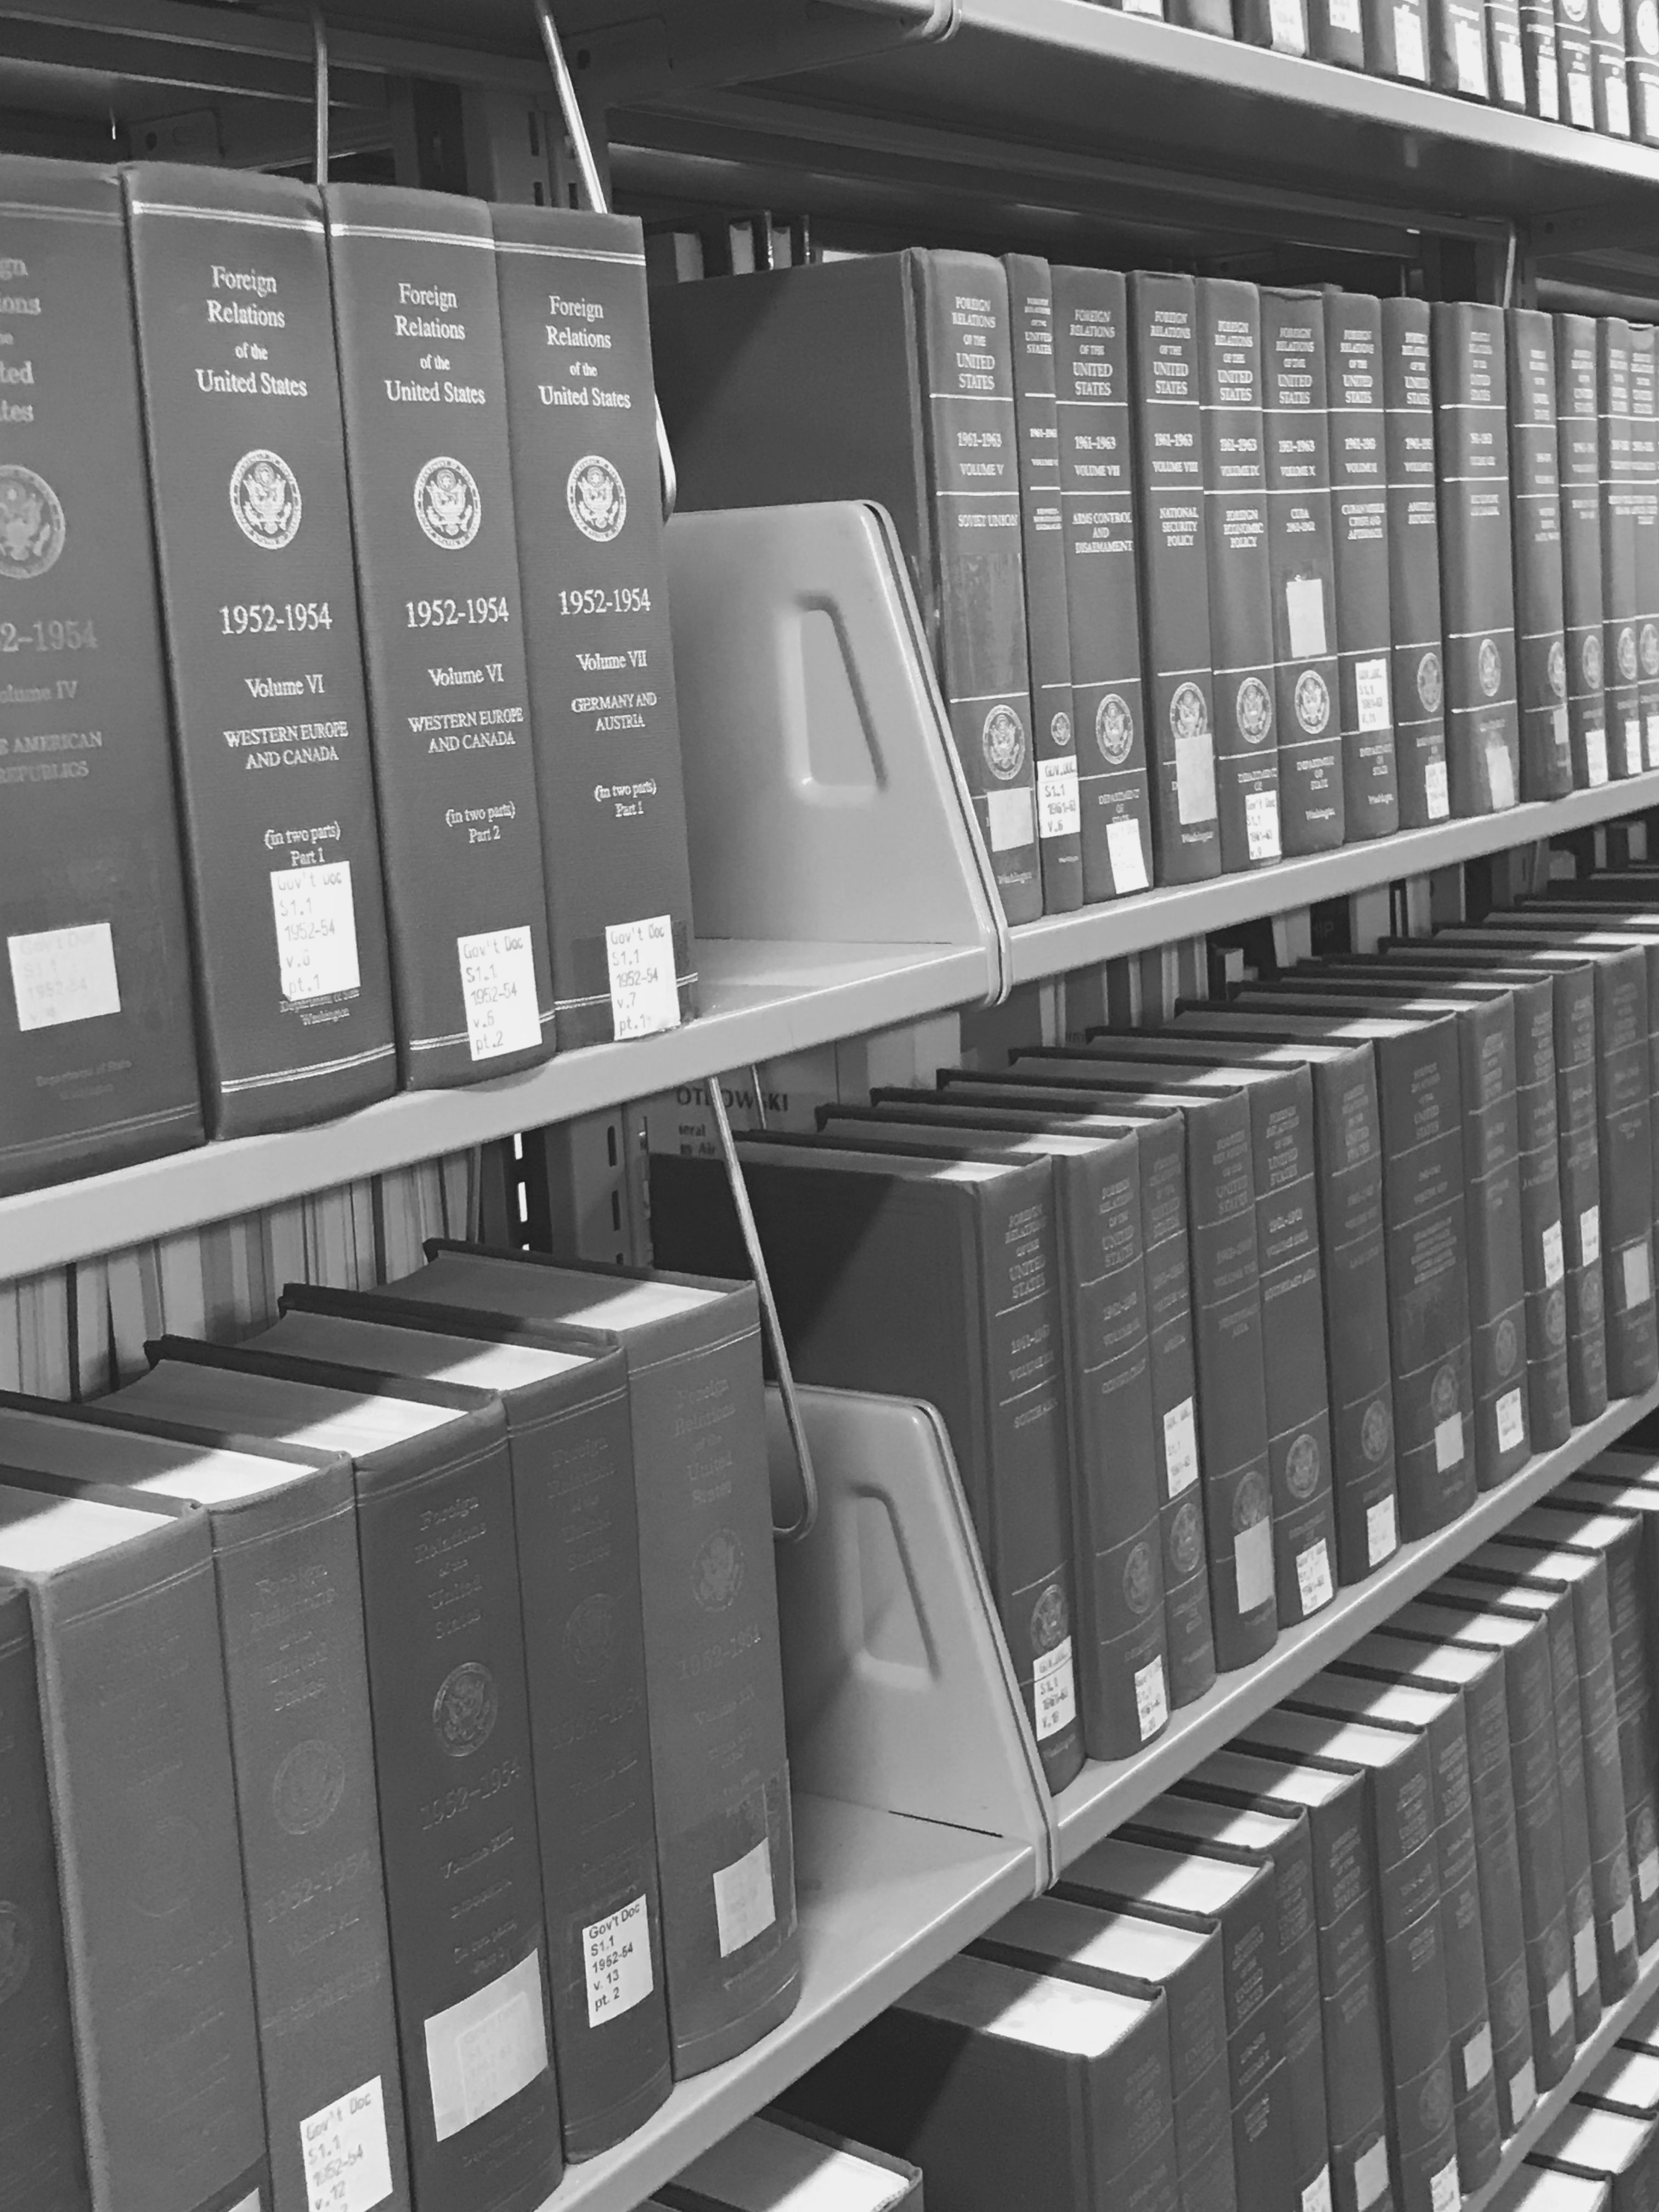 An image of a part of the Government Documents Collection at Columbus State University